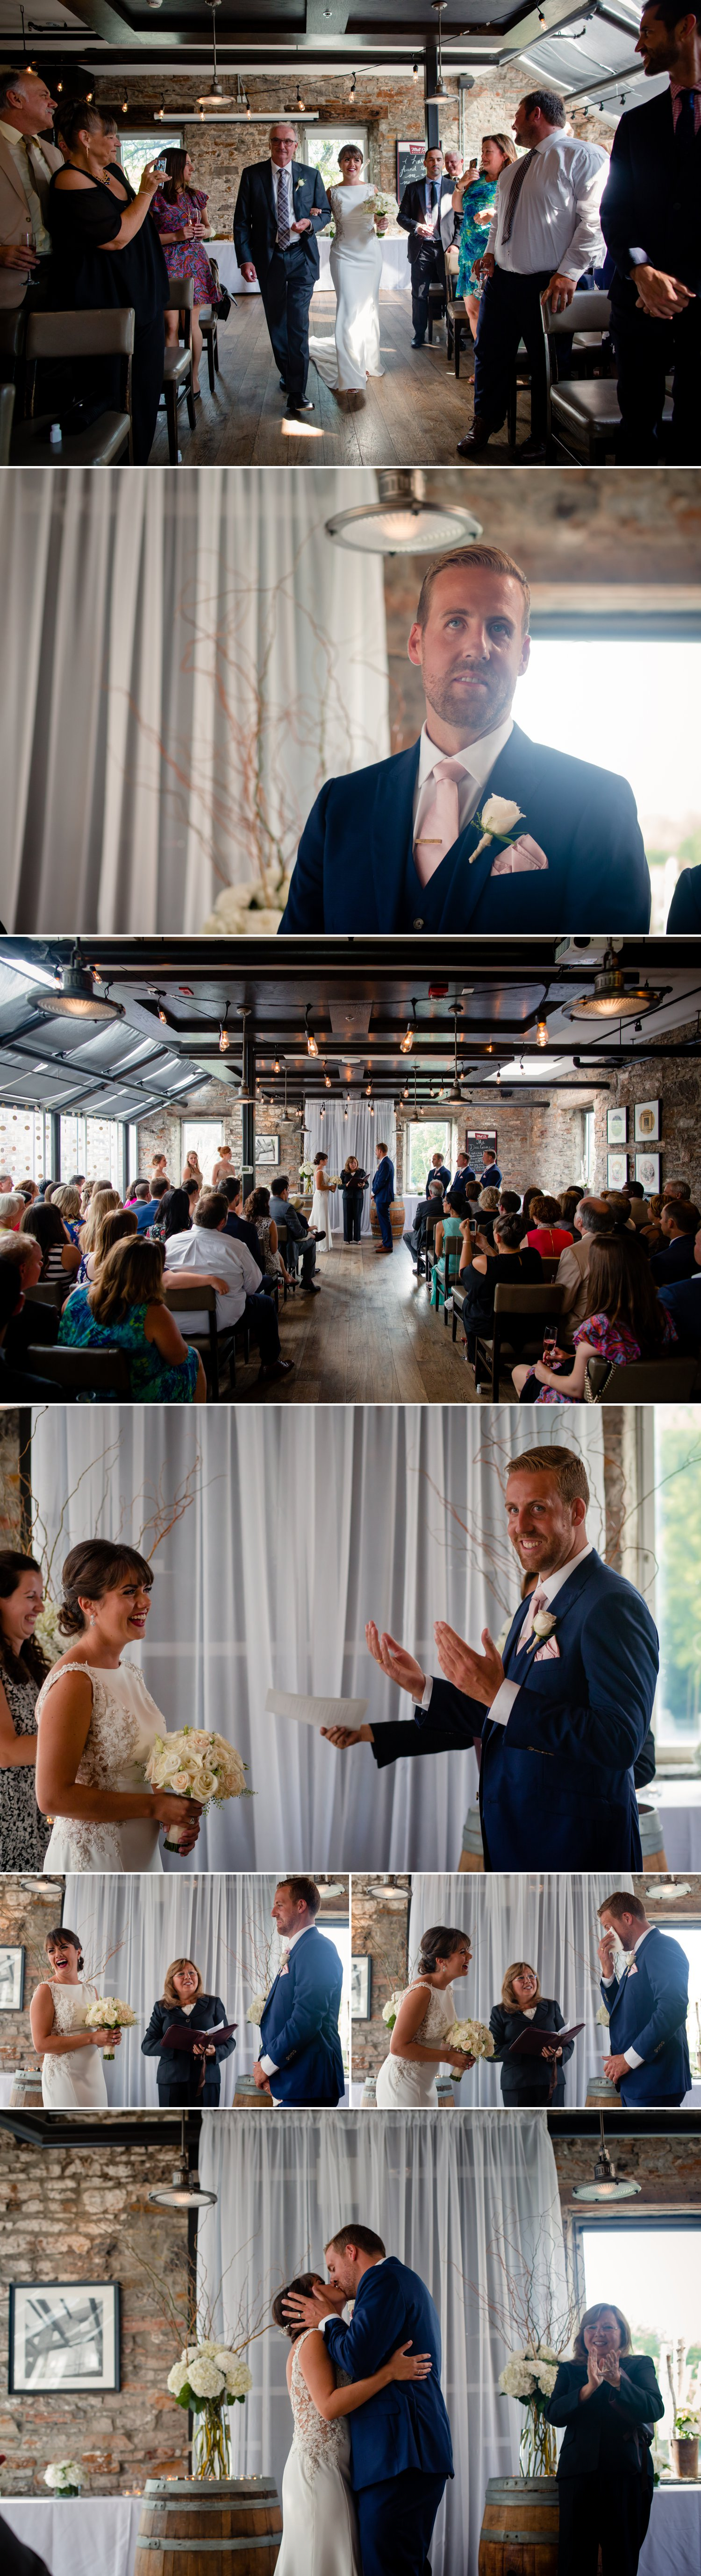 A wedding ceremony held at The Mill St. Brew Pub in downtown Ottawa